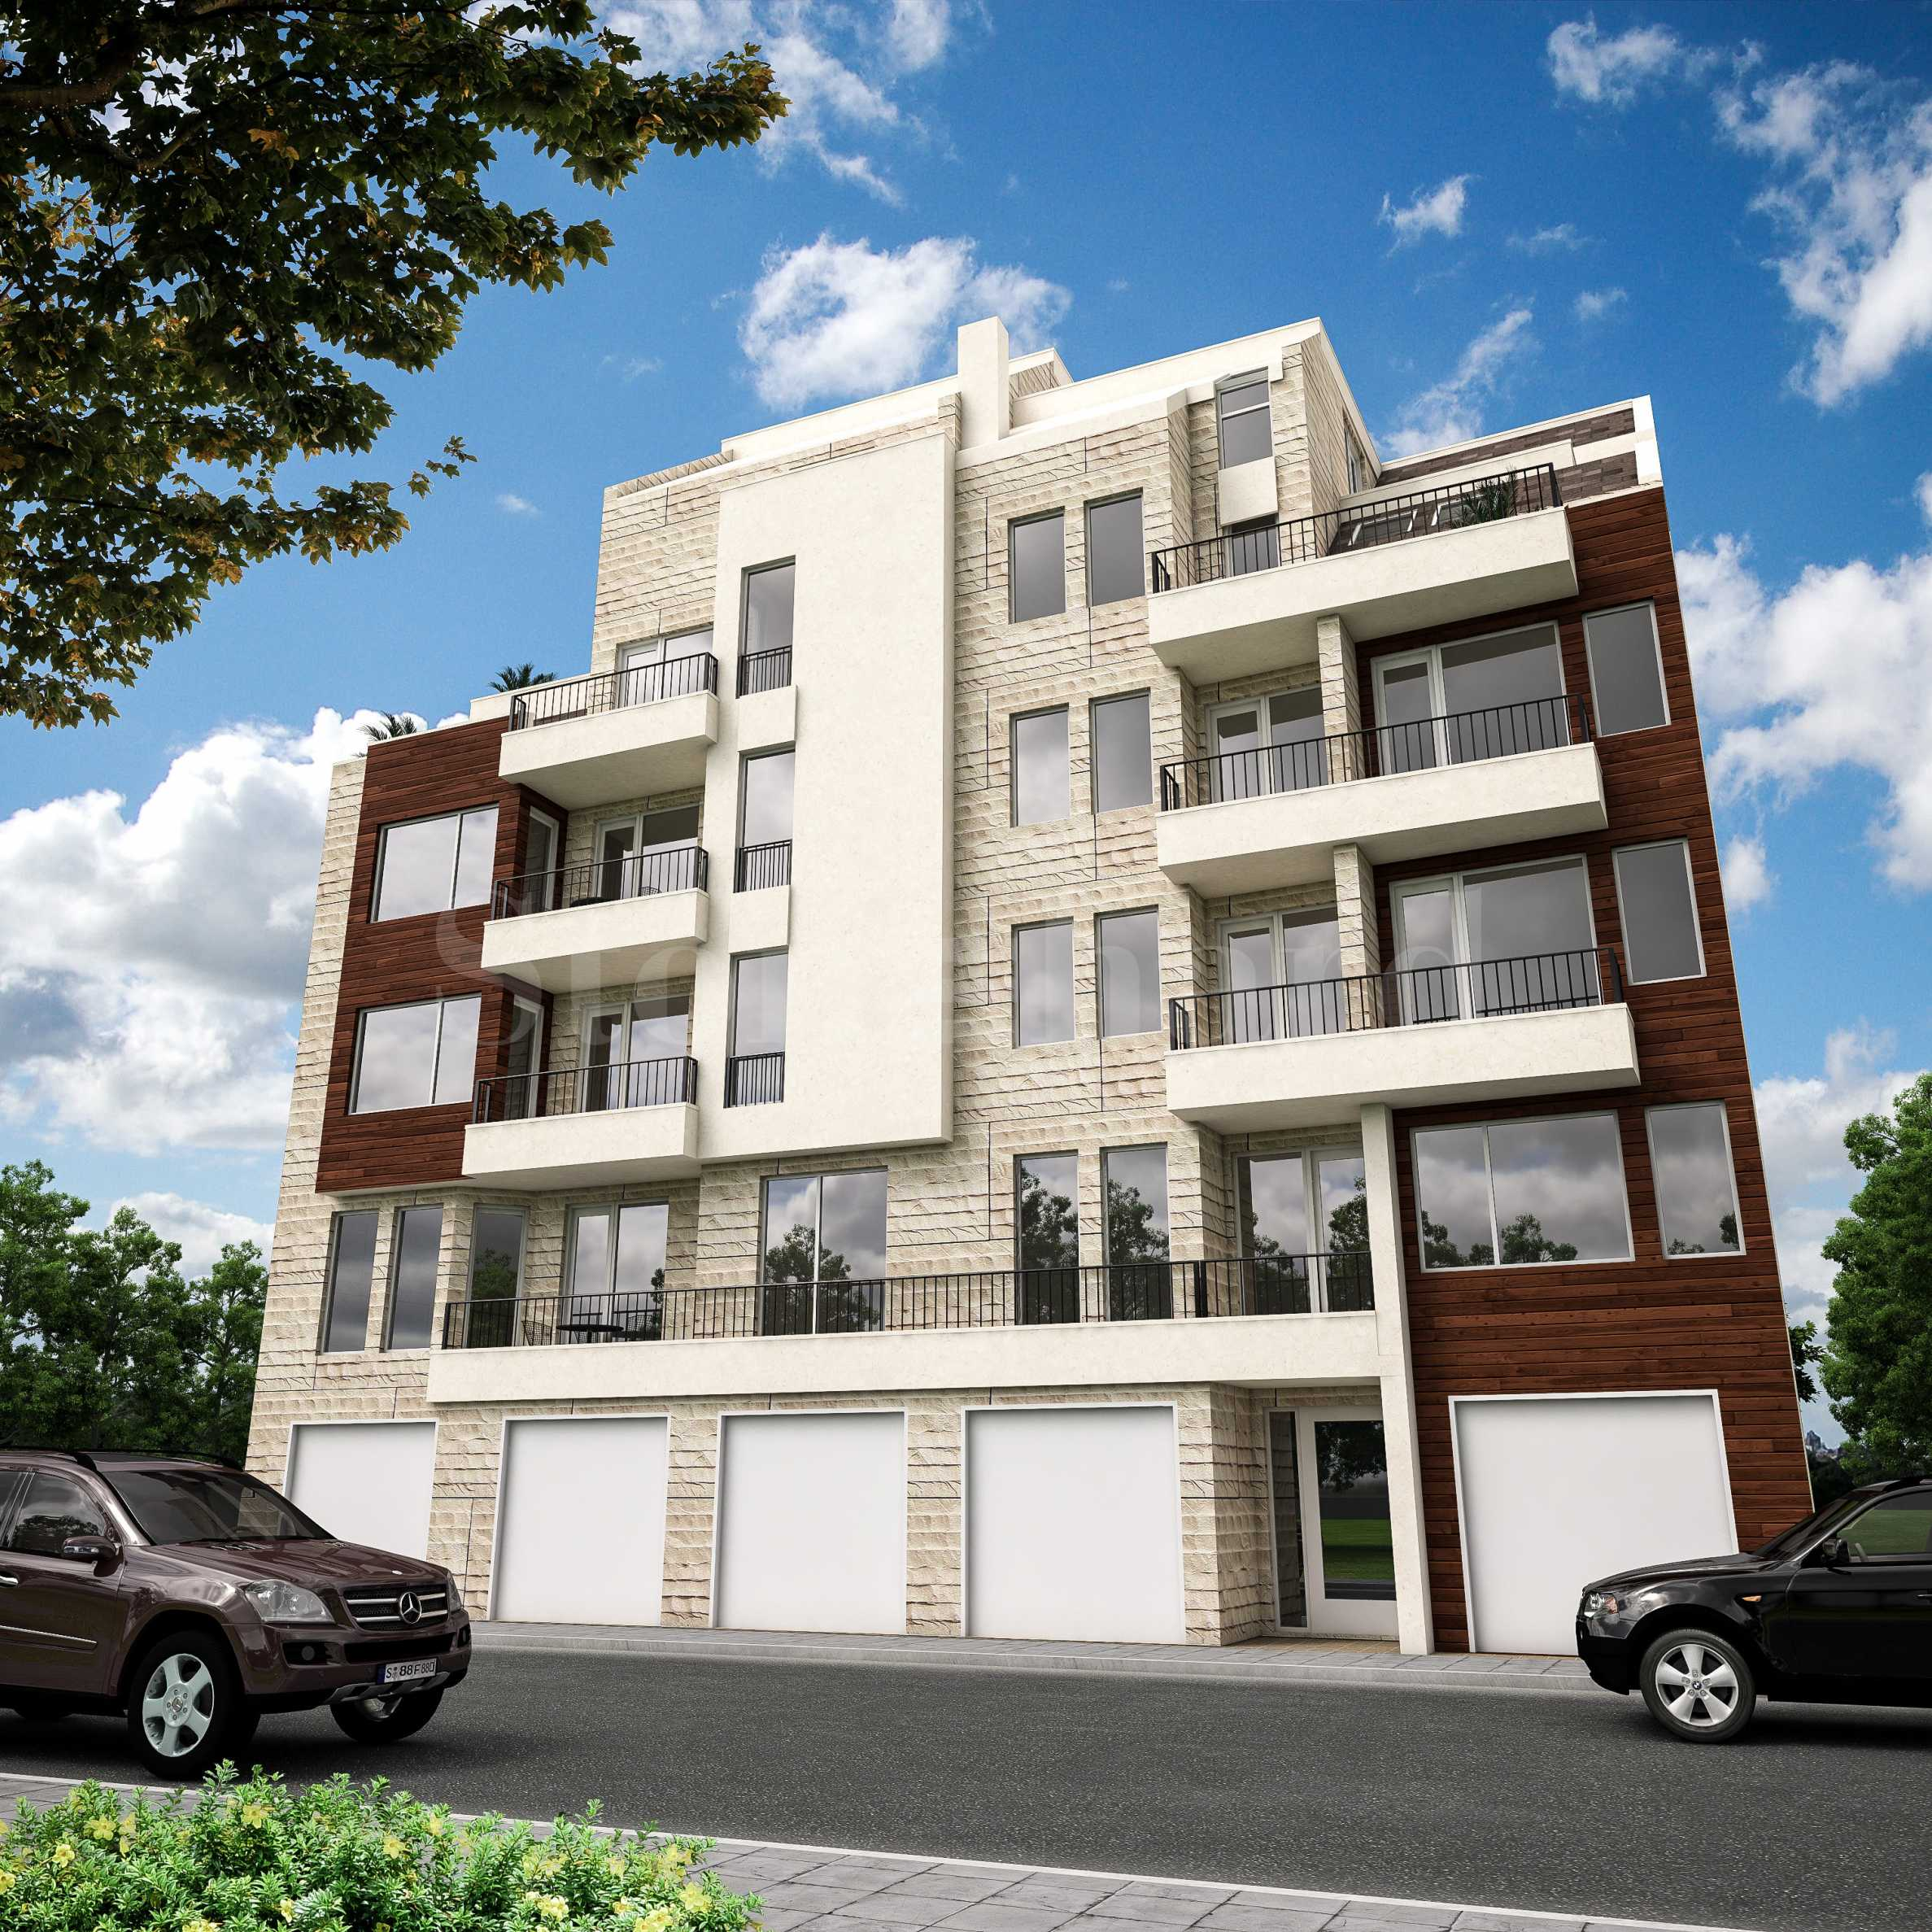 New 5-storey building with functional apartments near the center of Burgas2 - Stonehard